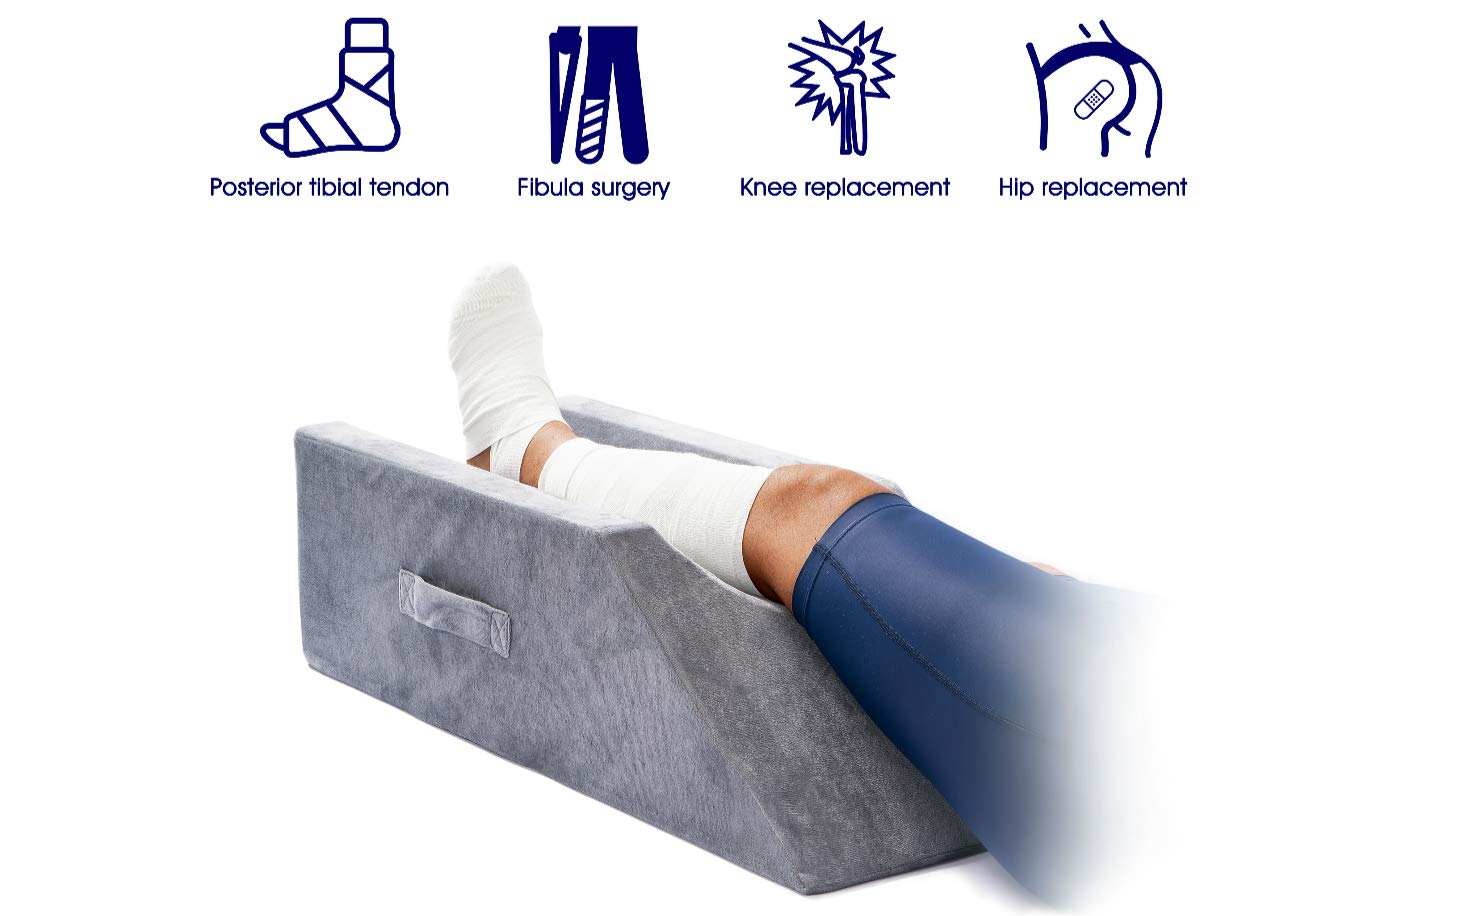 LightEase Memory Foam Leg, Knee, Ankle Support and Elevation Leg Pillow for Surgery by LightEase